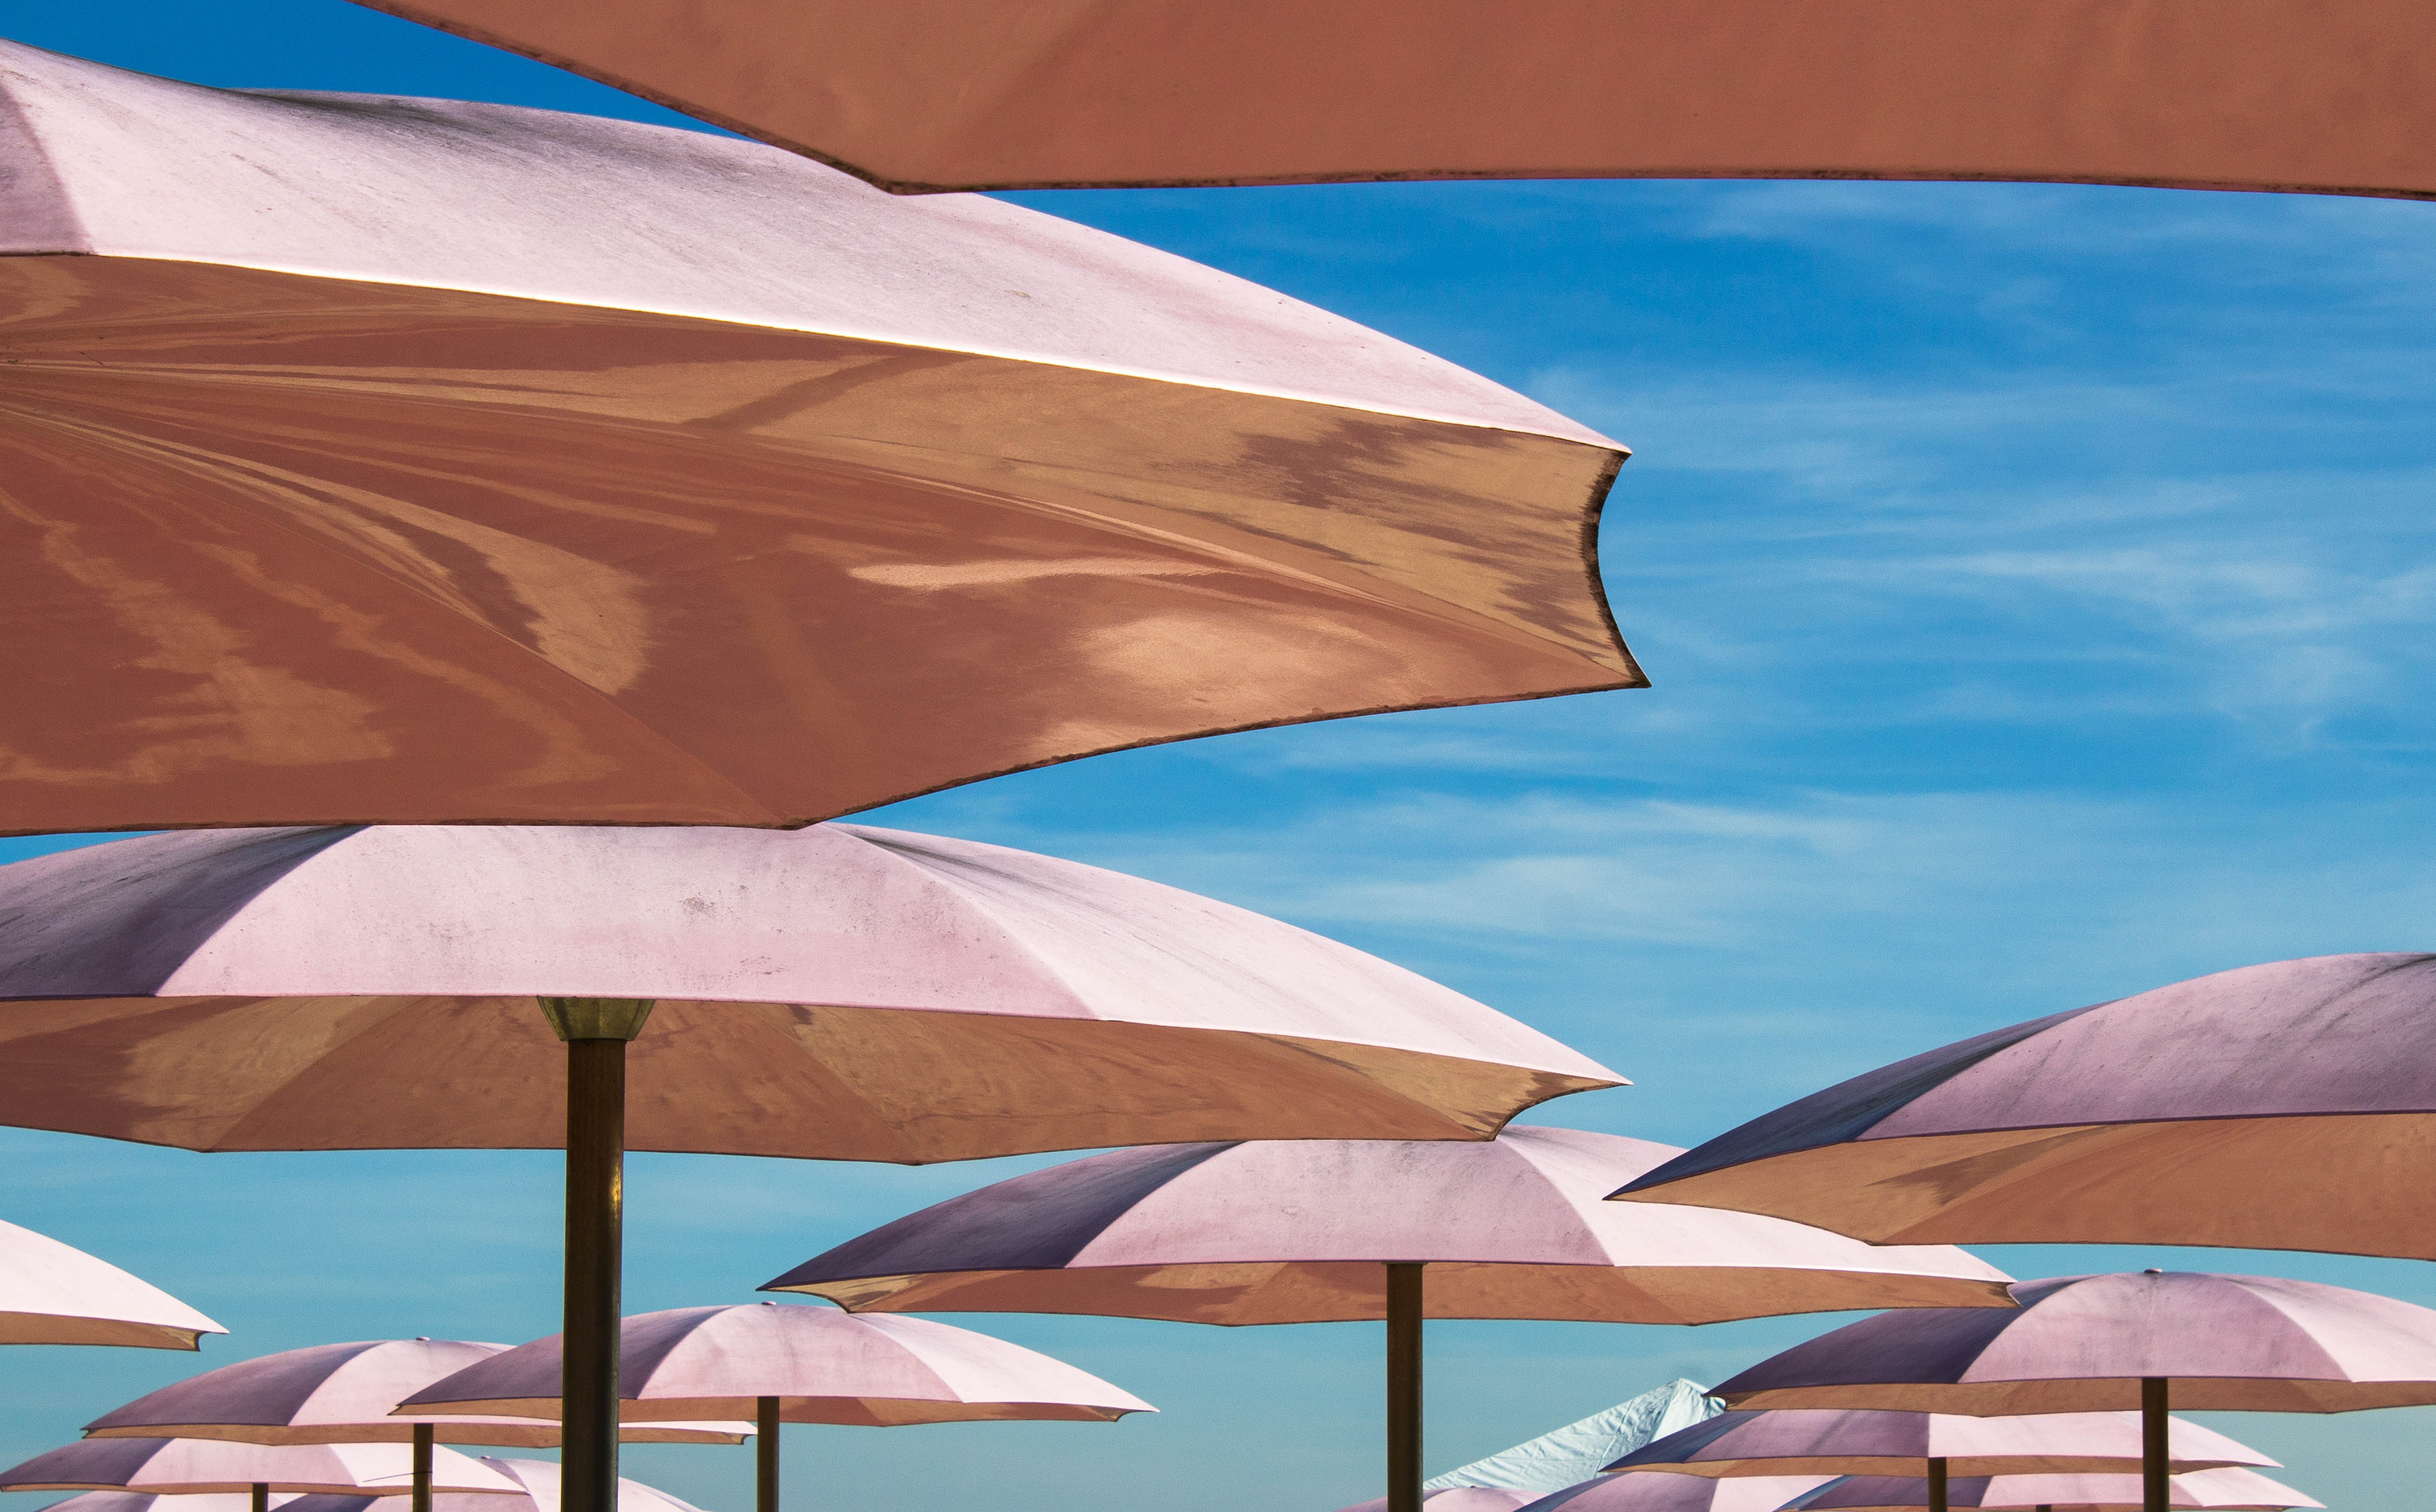 Parasols in the beach